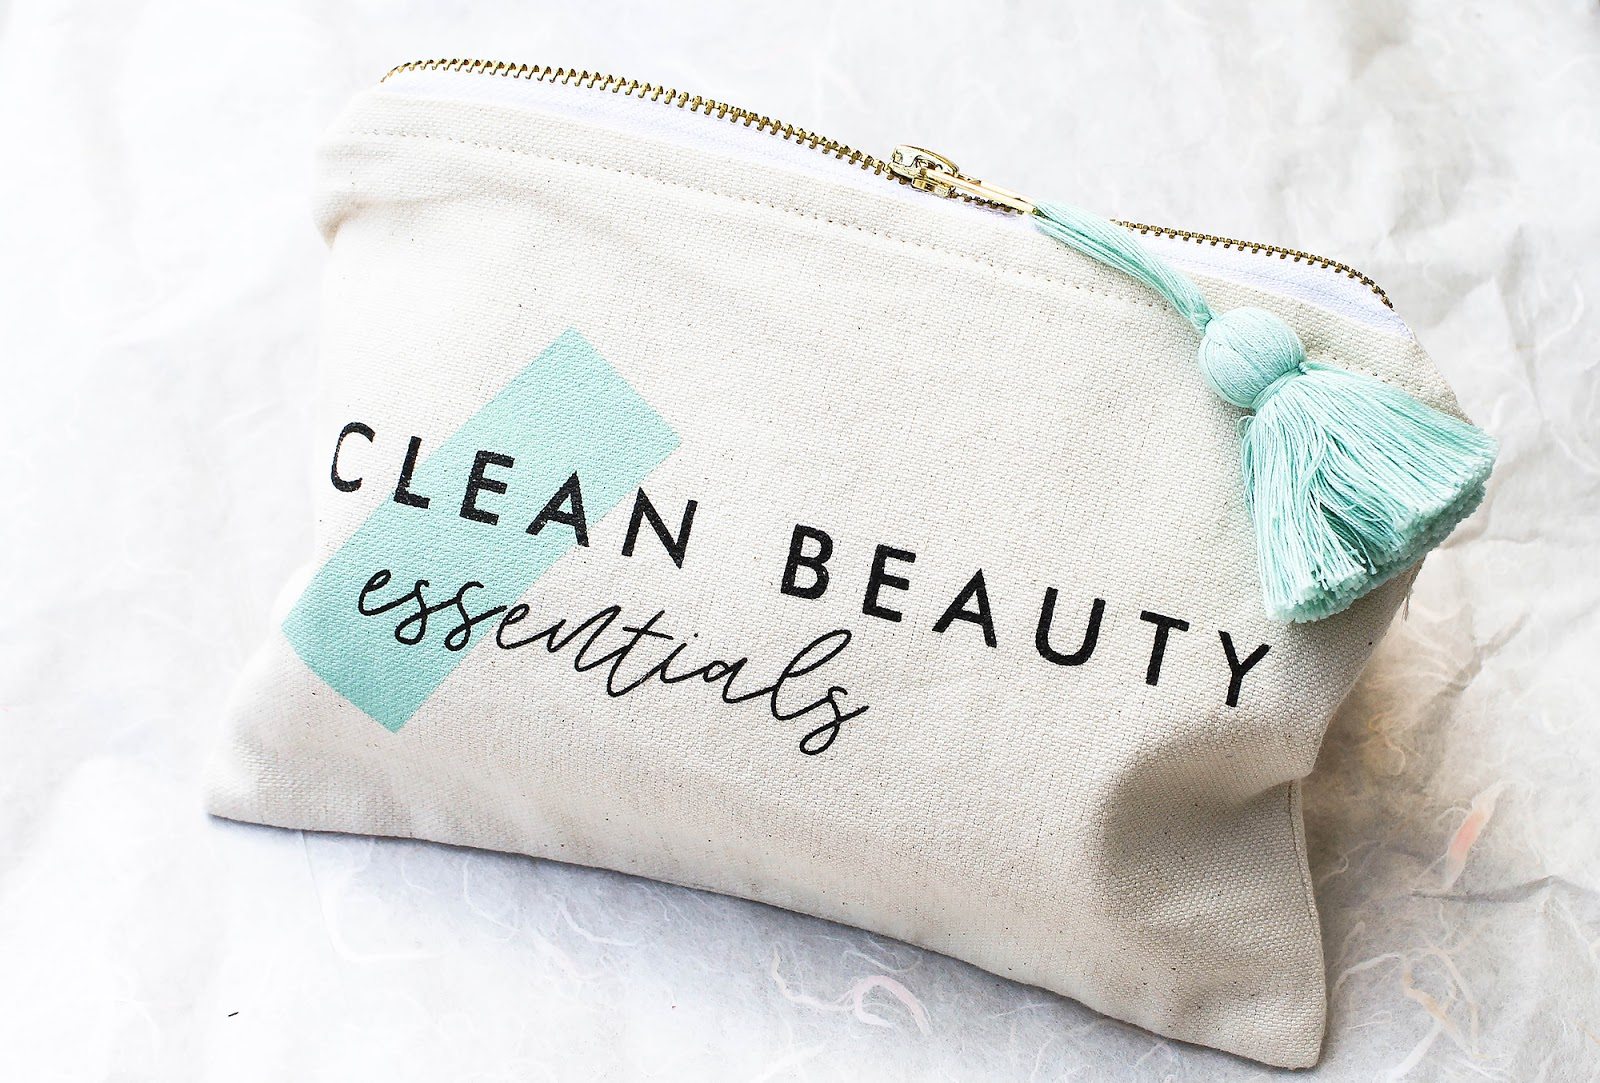 May Art of Organics Clean Beauty Box Clean Beauty Essentials. JET SET. Piece & Co Organic Cotton Travel Pouch.